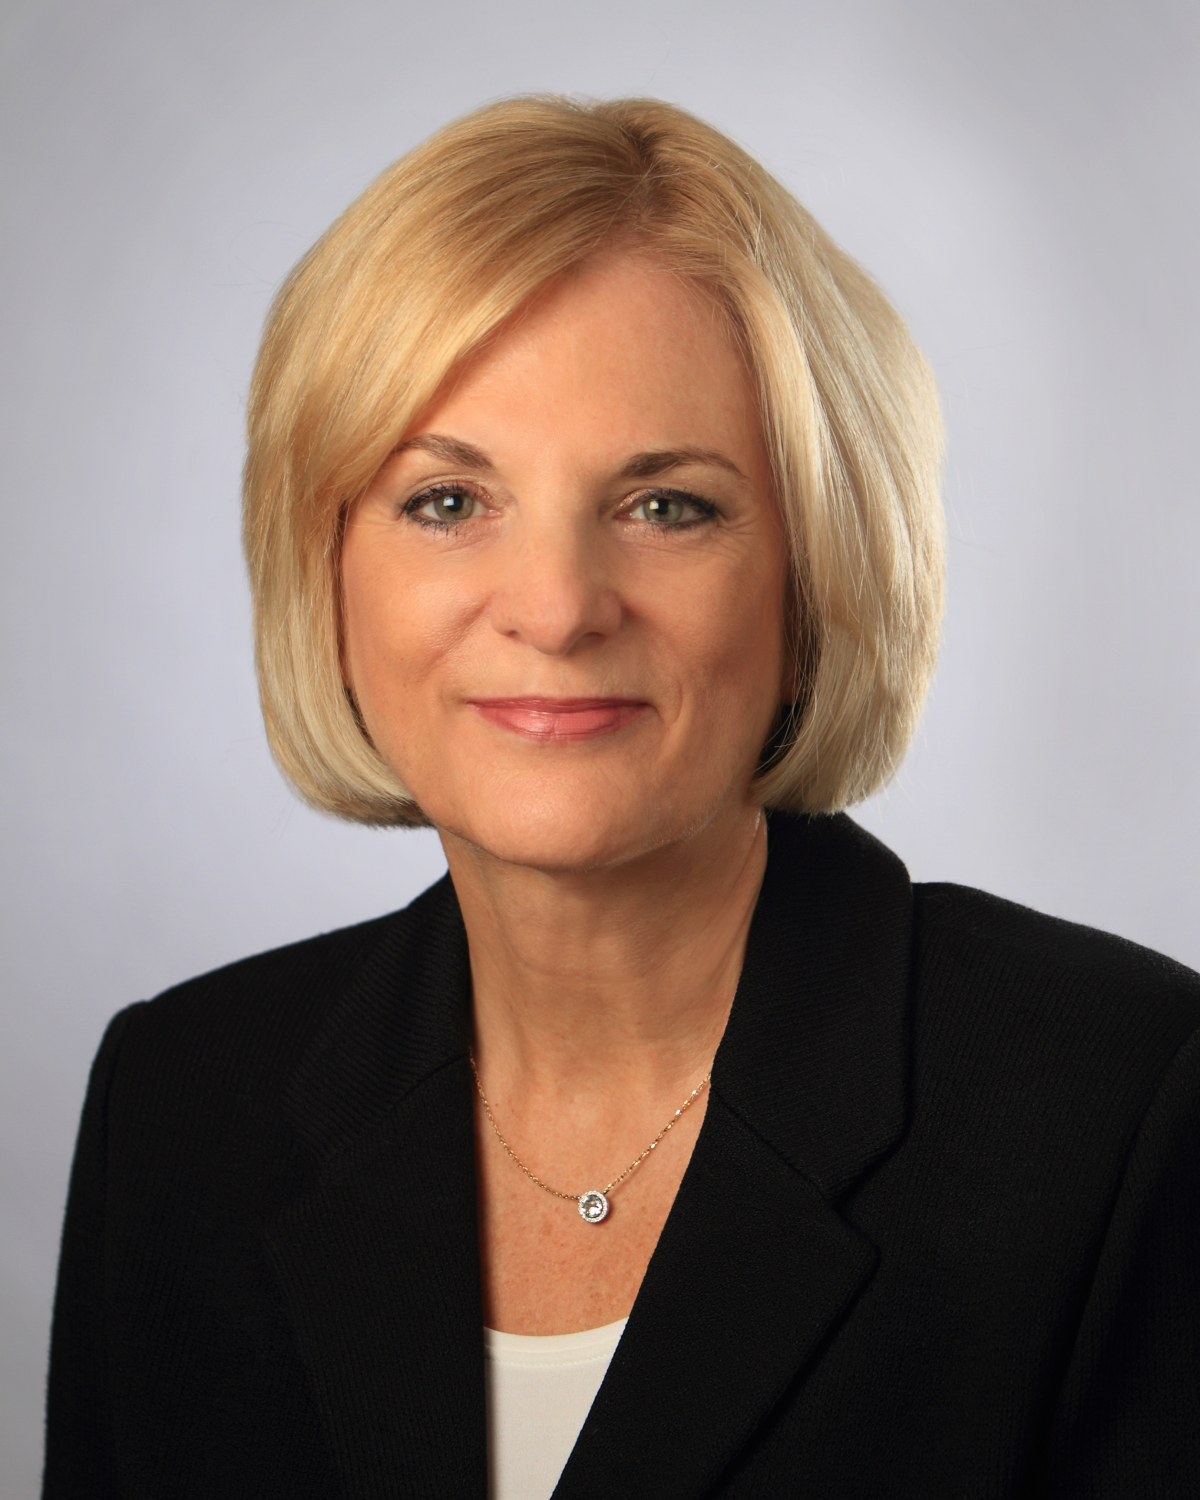 Nan Kreamer, Newpoint Advisors Corporation